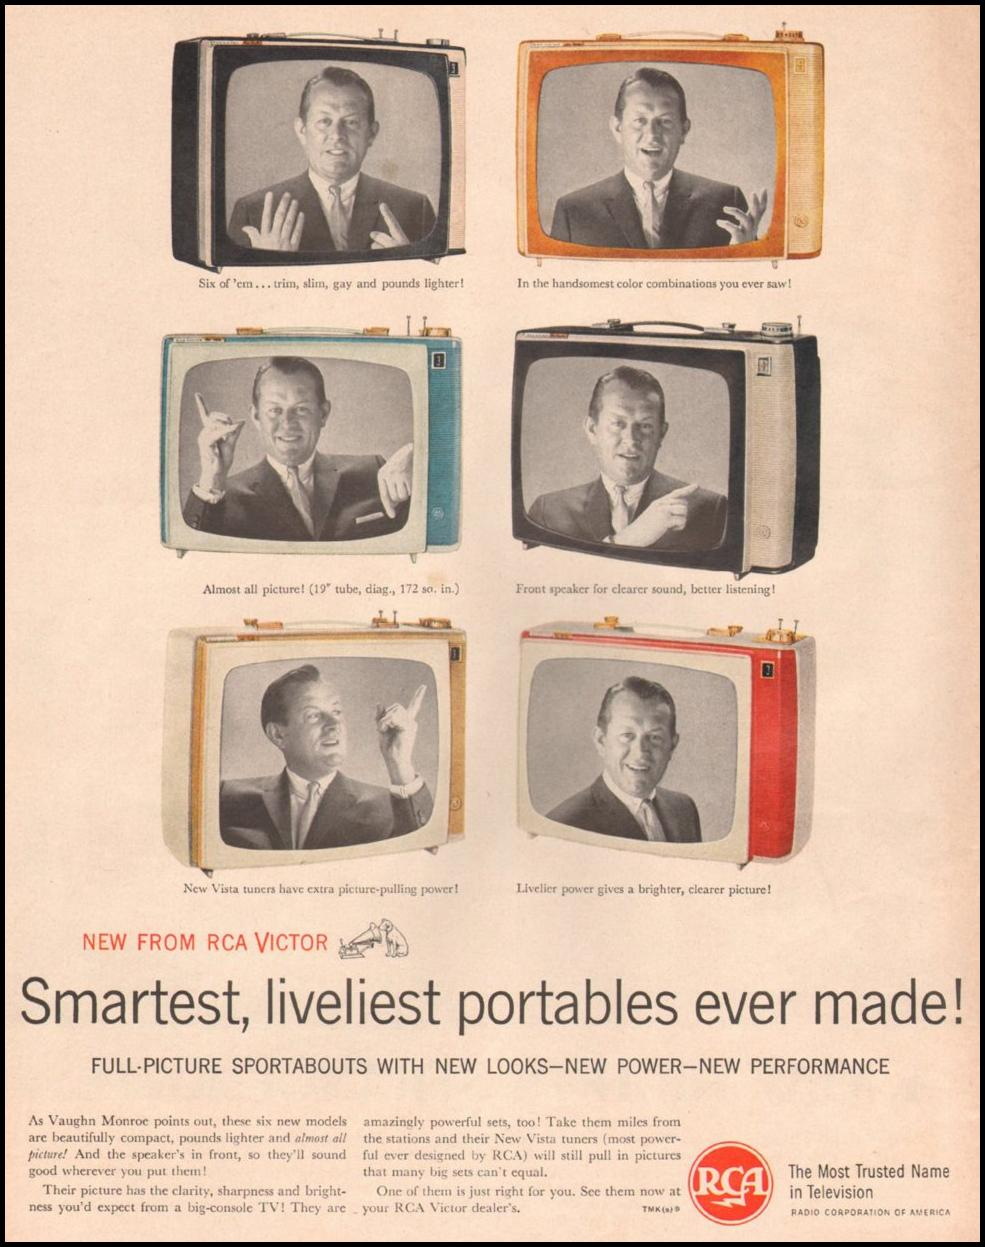 RCA PORTABLE TELEVISIONS LIFE 05/05/1961